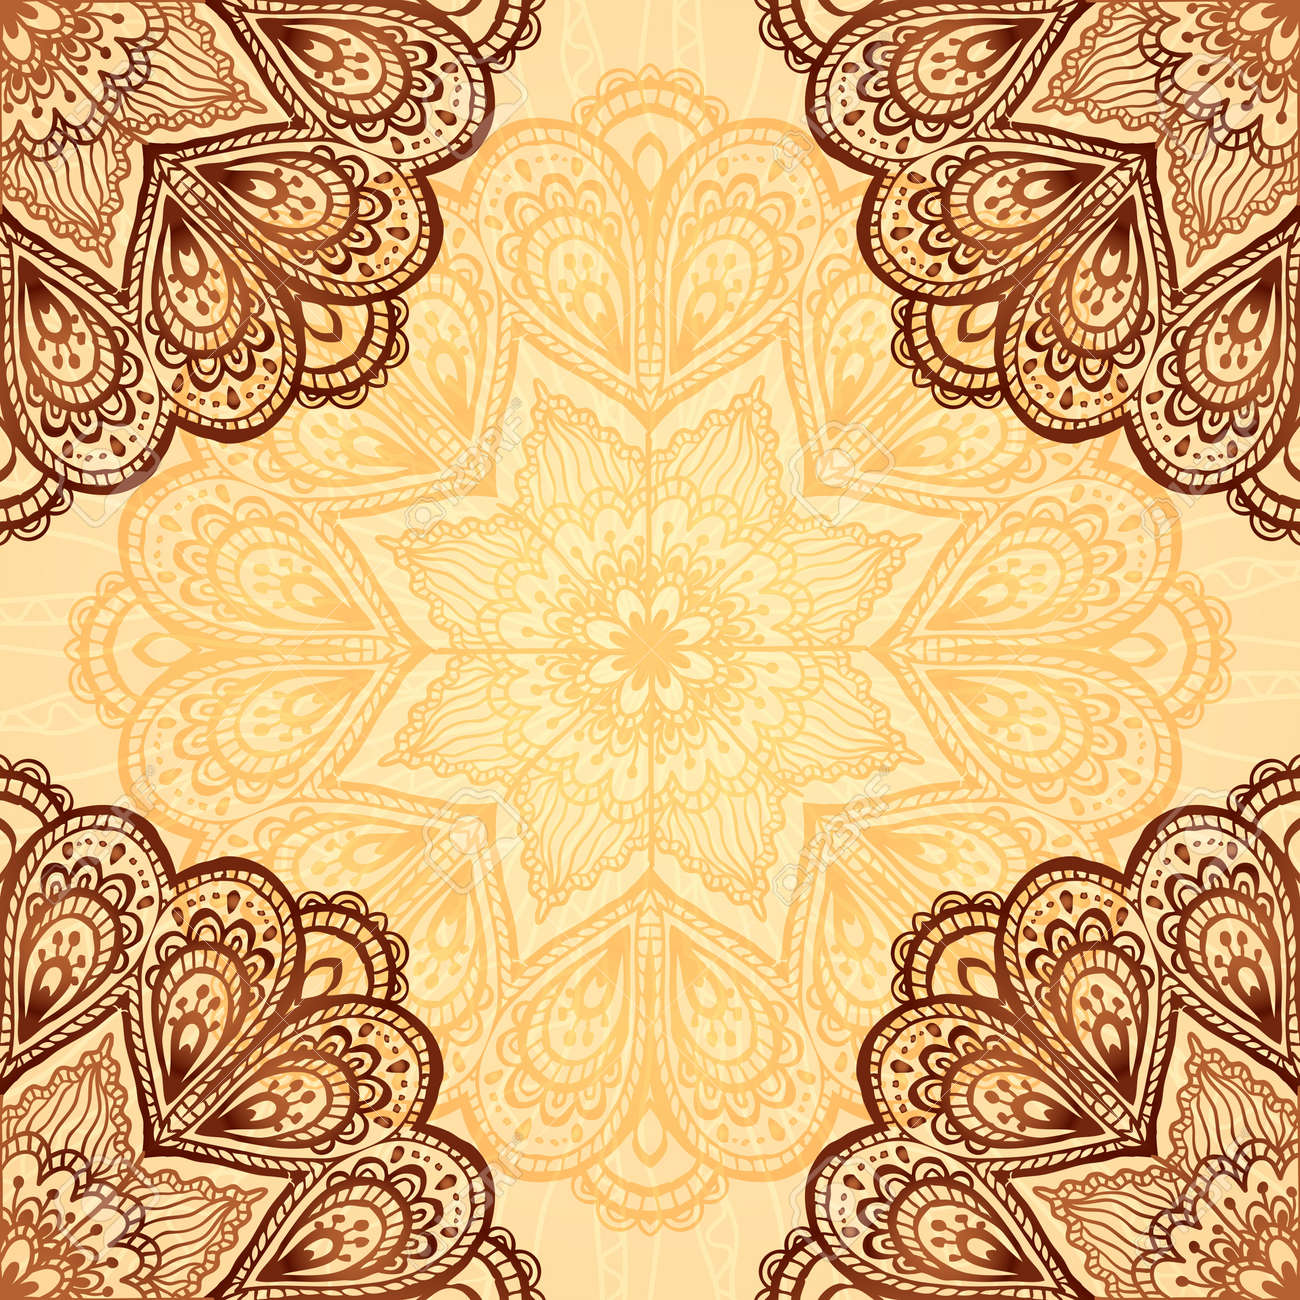 Ornate Napkin Vector Background In Henna Colors Royalty Free